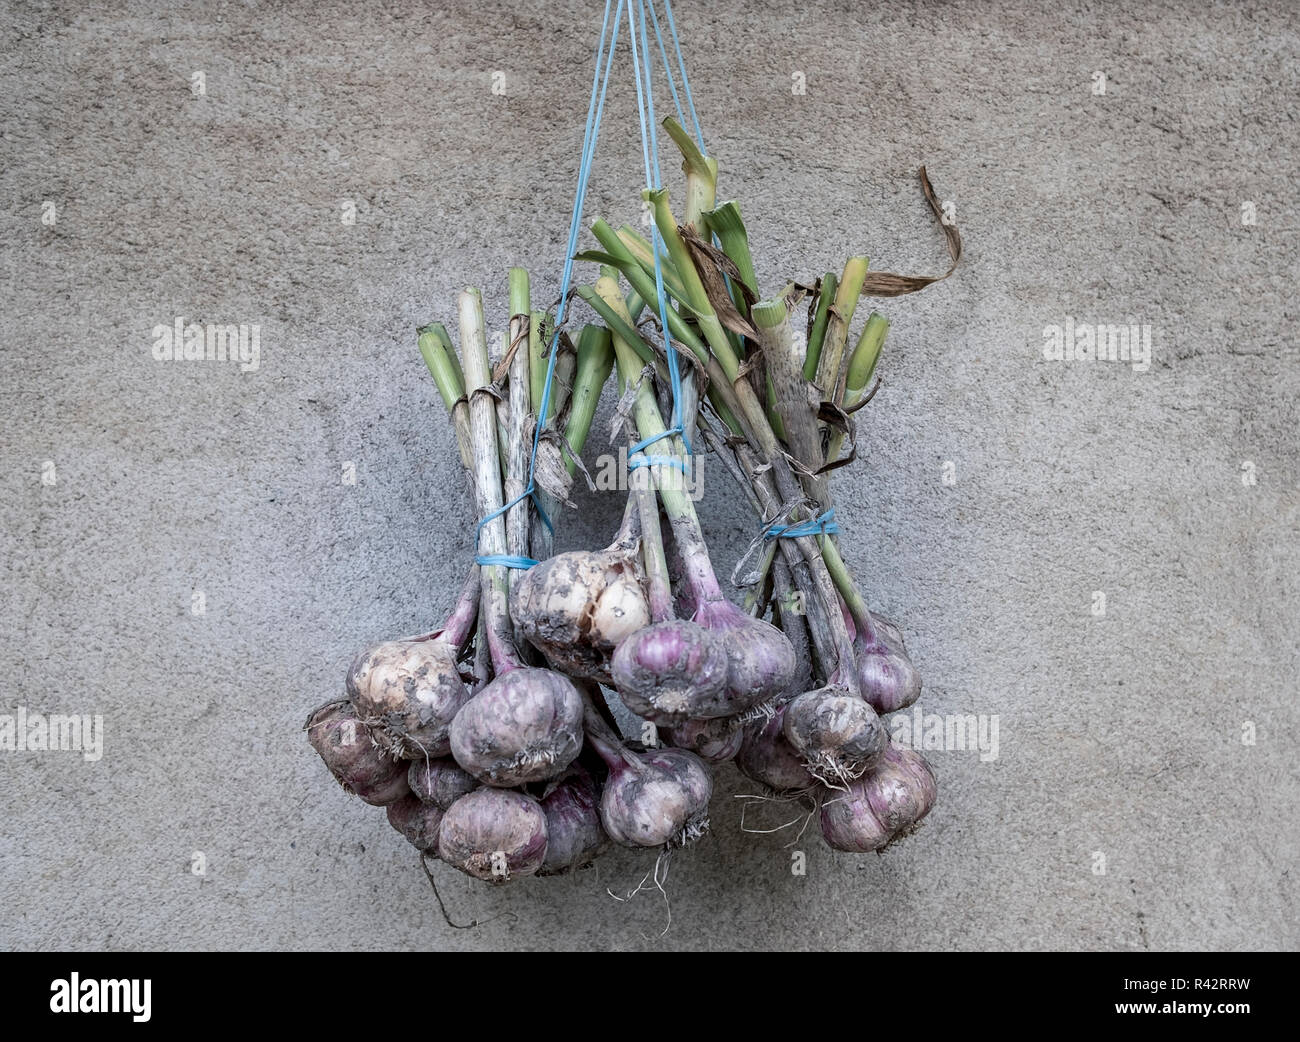 Organic, freshly picked and locally grown bunch of garlic drying in the sun. Stock Photo